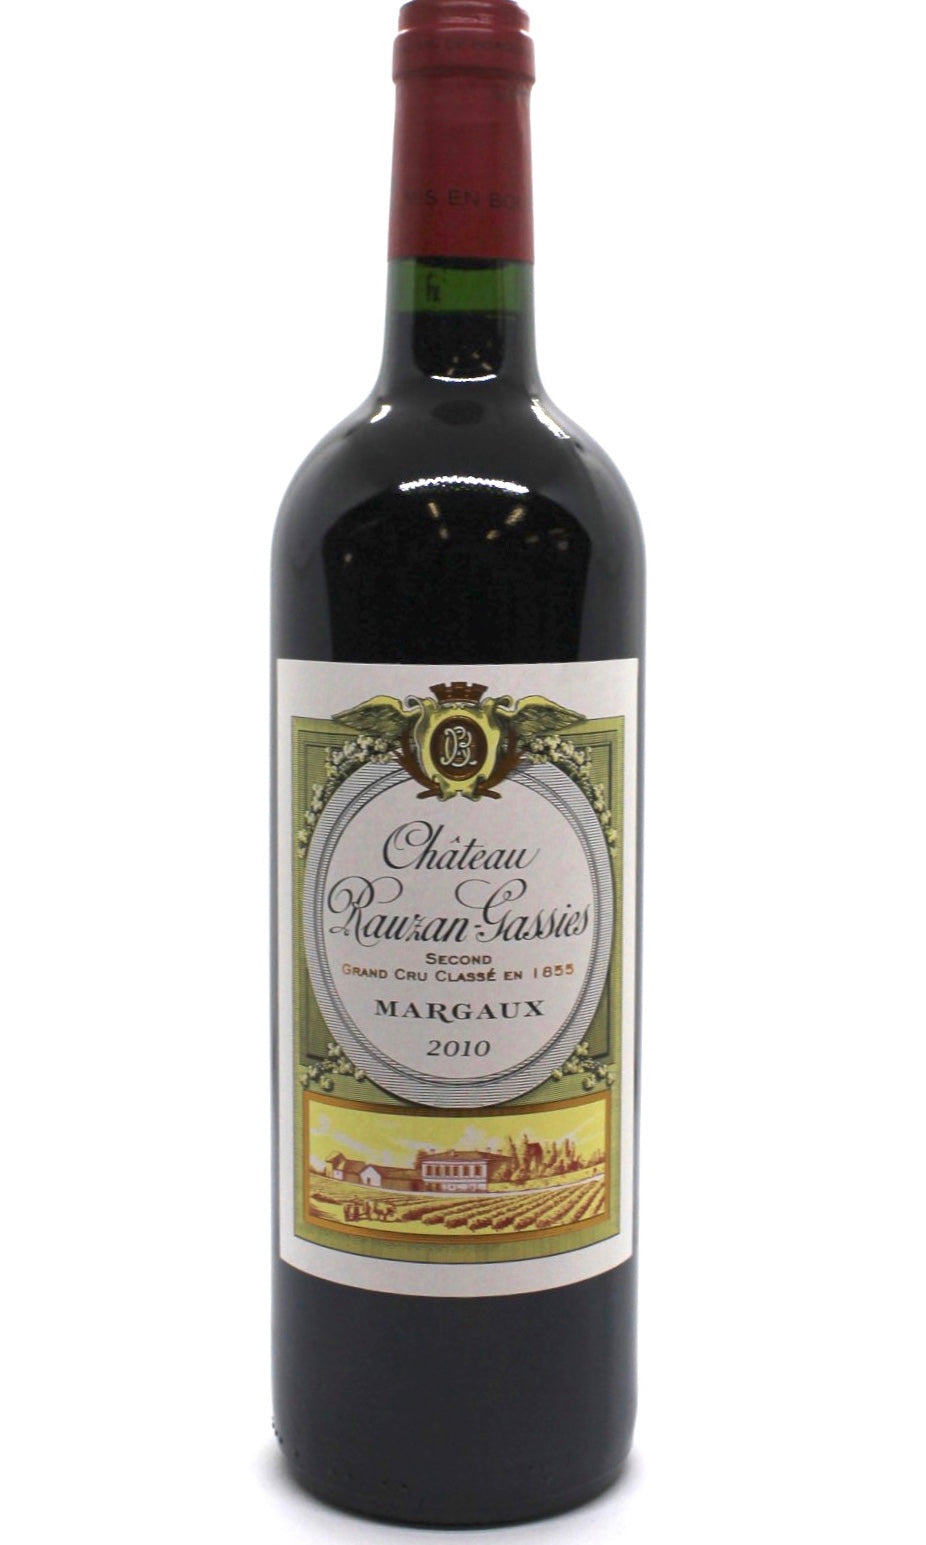 2010 Château Rauzan - Gassies Classified 2nd growth - Margaux